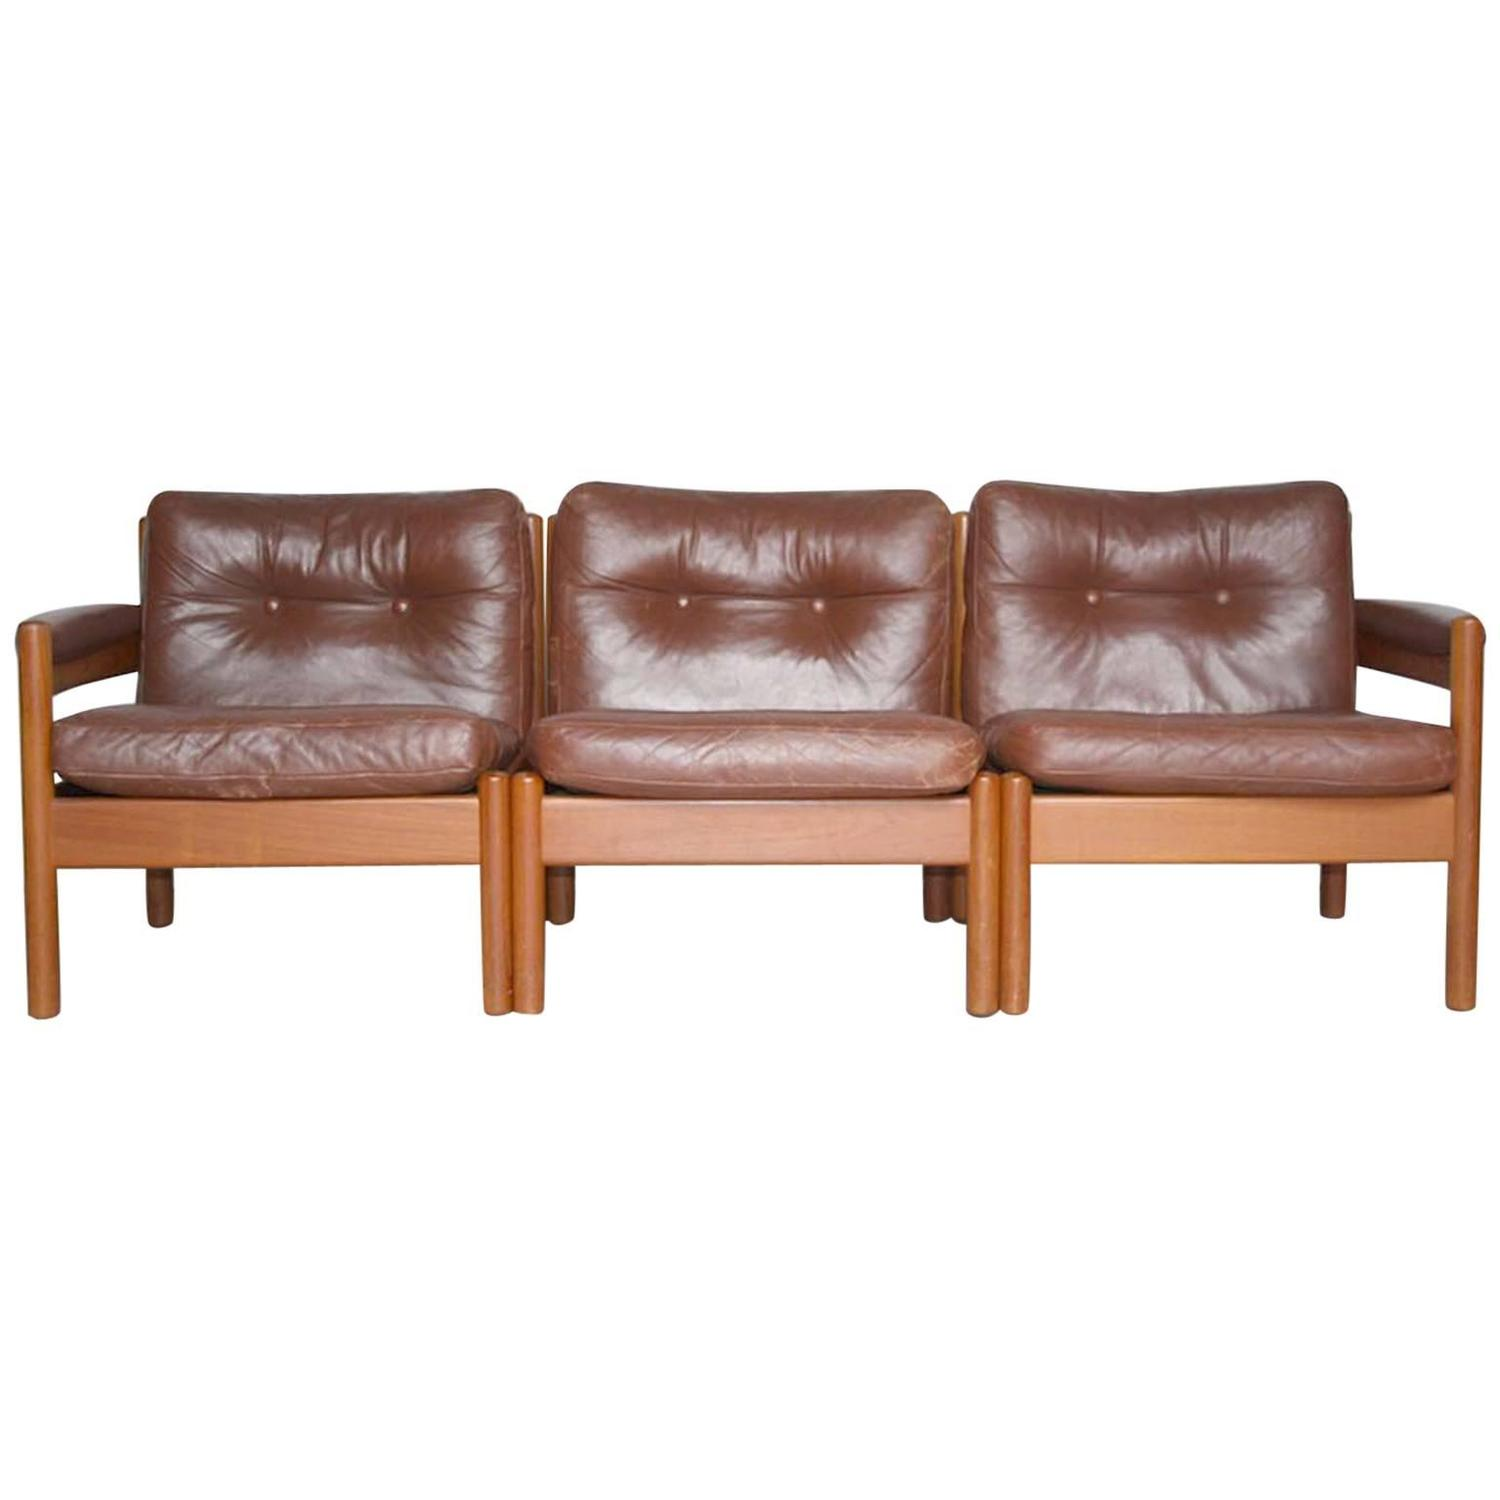 1960s Dutch Mid Century Sofa or Daybed by Robert Parry New